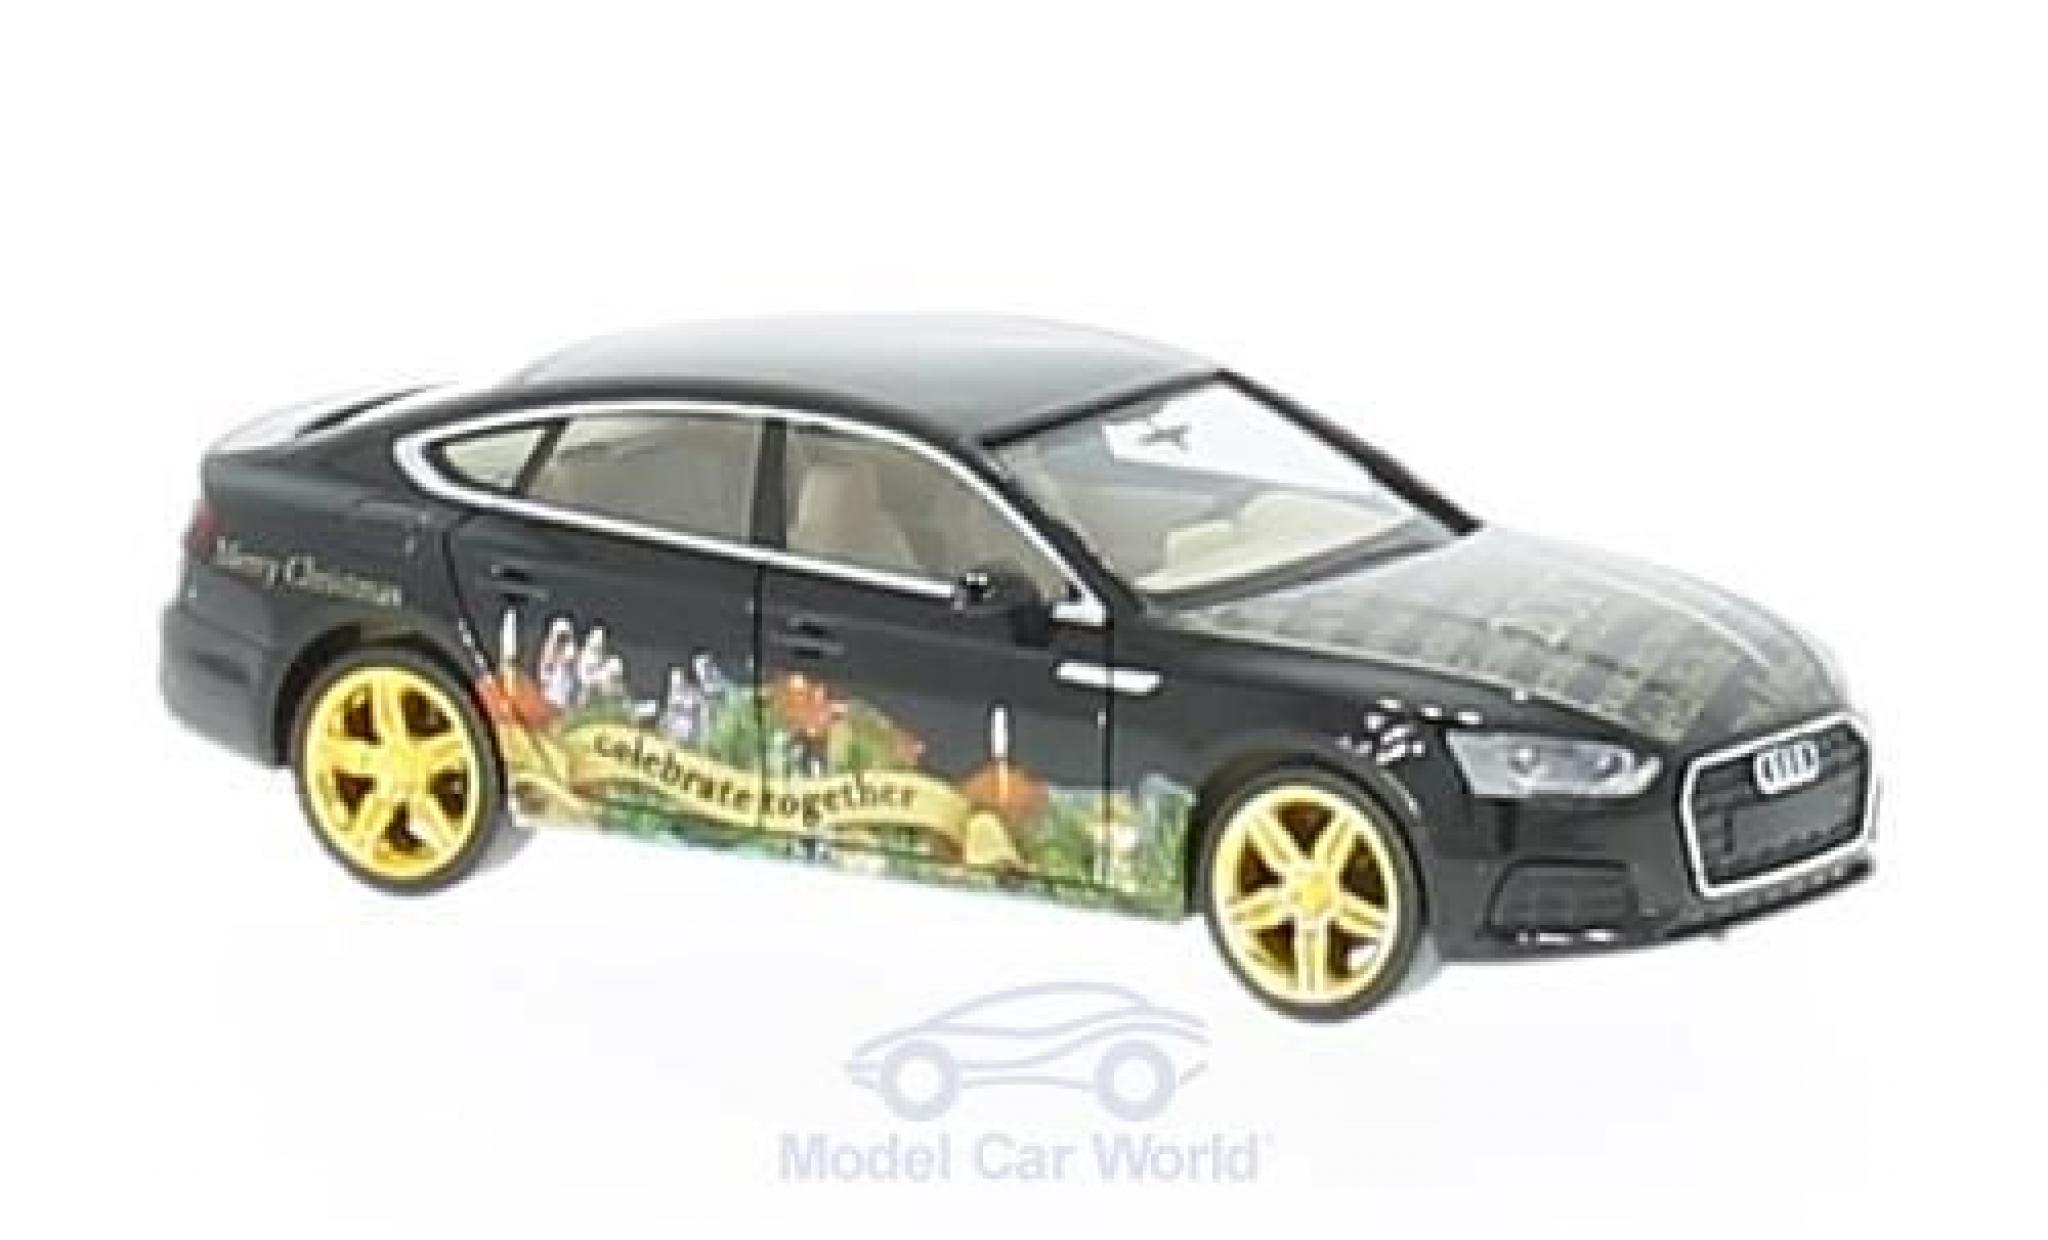 Audi A5 1/87 Herpa Sportback 2017 Herpa Weihnachts-PKW